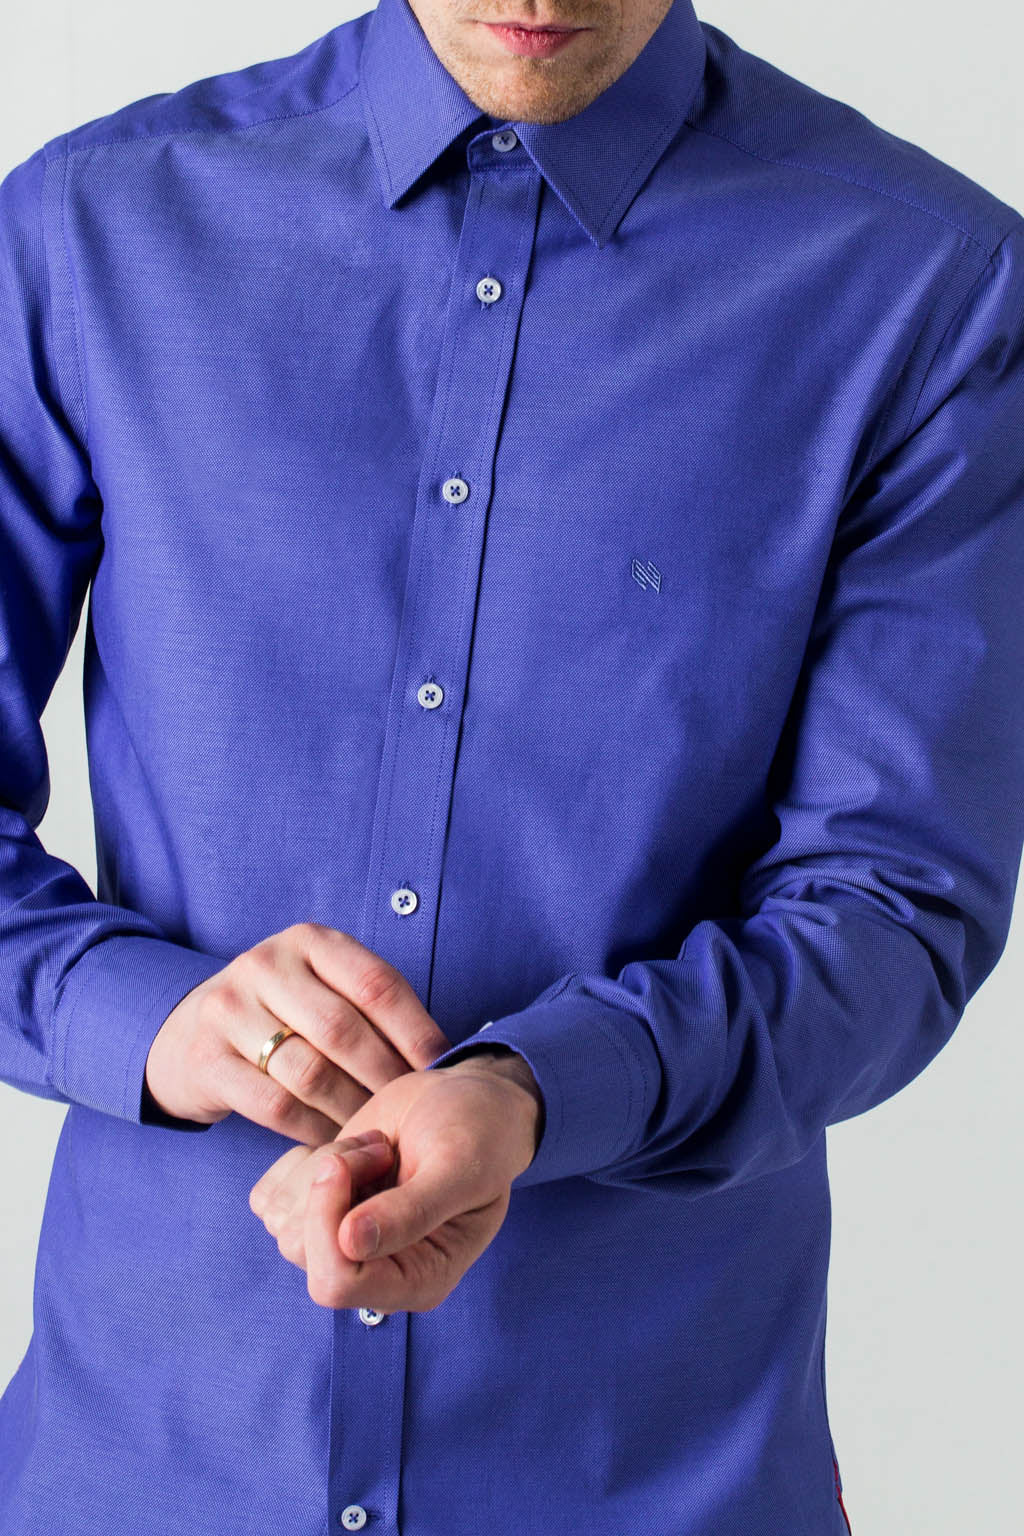 ÓÐINN ORIGINAL CLASSIC COLLAR SHIRT